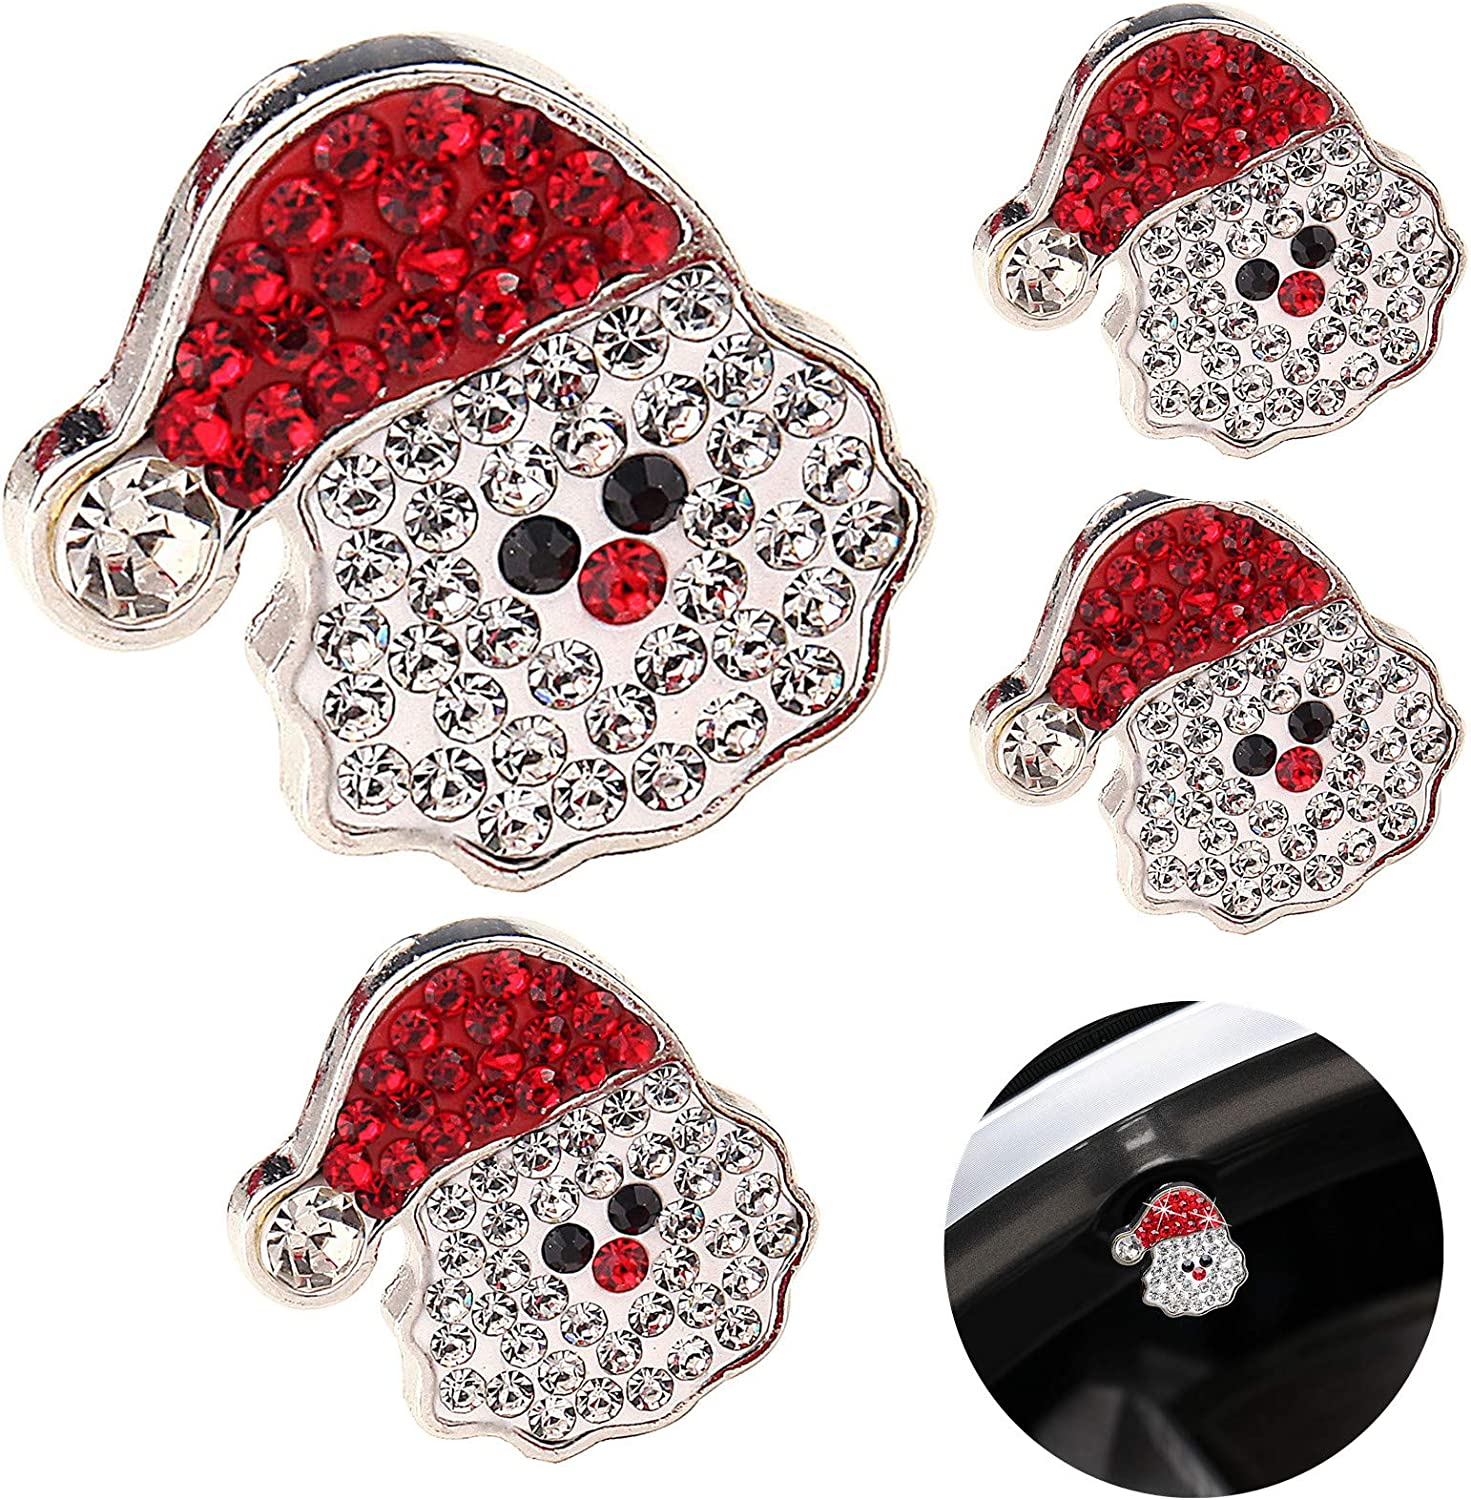 JOJOY LUX 4 Pack Valve Stem Caps, Handmade Crystal Rhinestone Universal Car Tire Valve Caps,Holiday Unique Decor Santa Hat Xmax Decorations Ornament for Tire